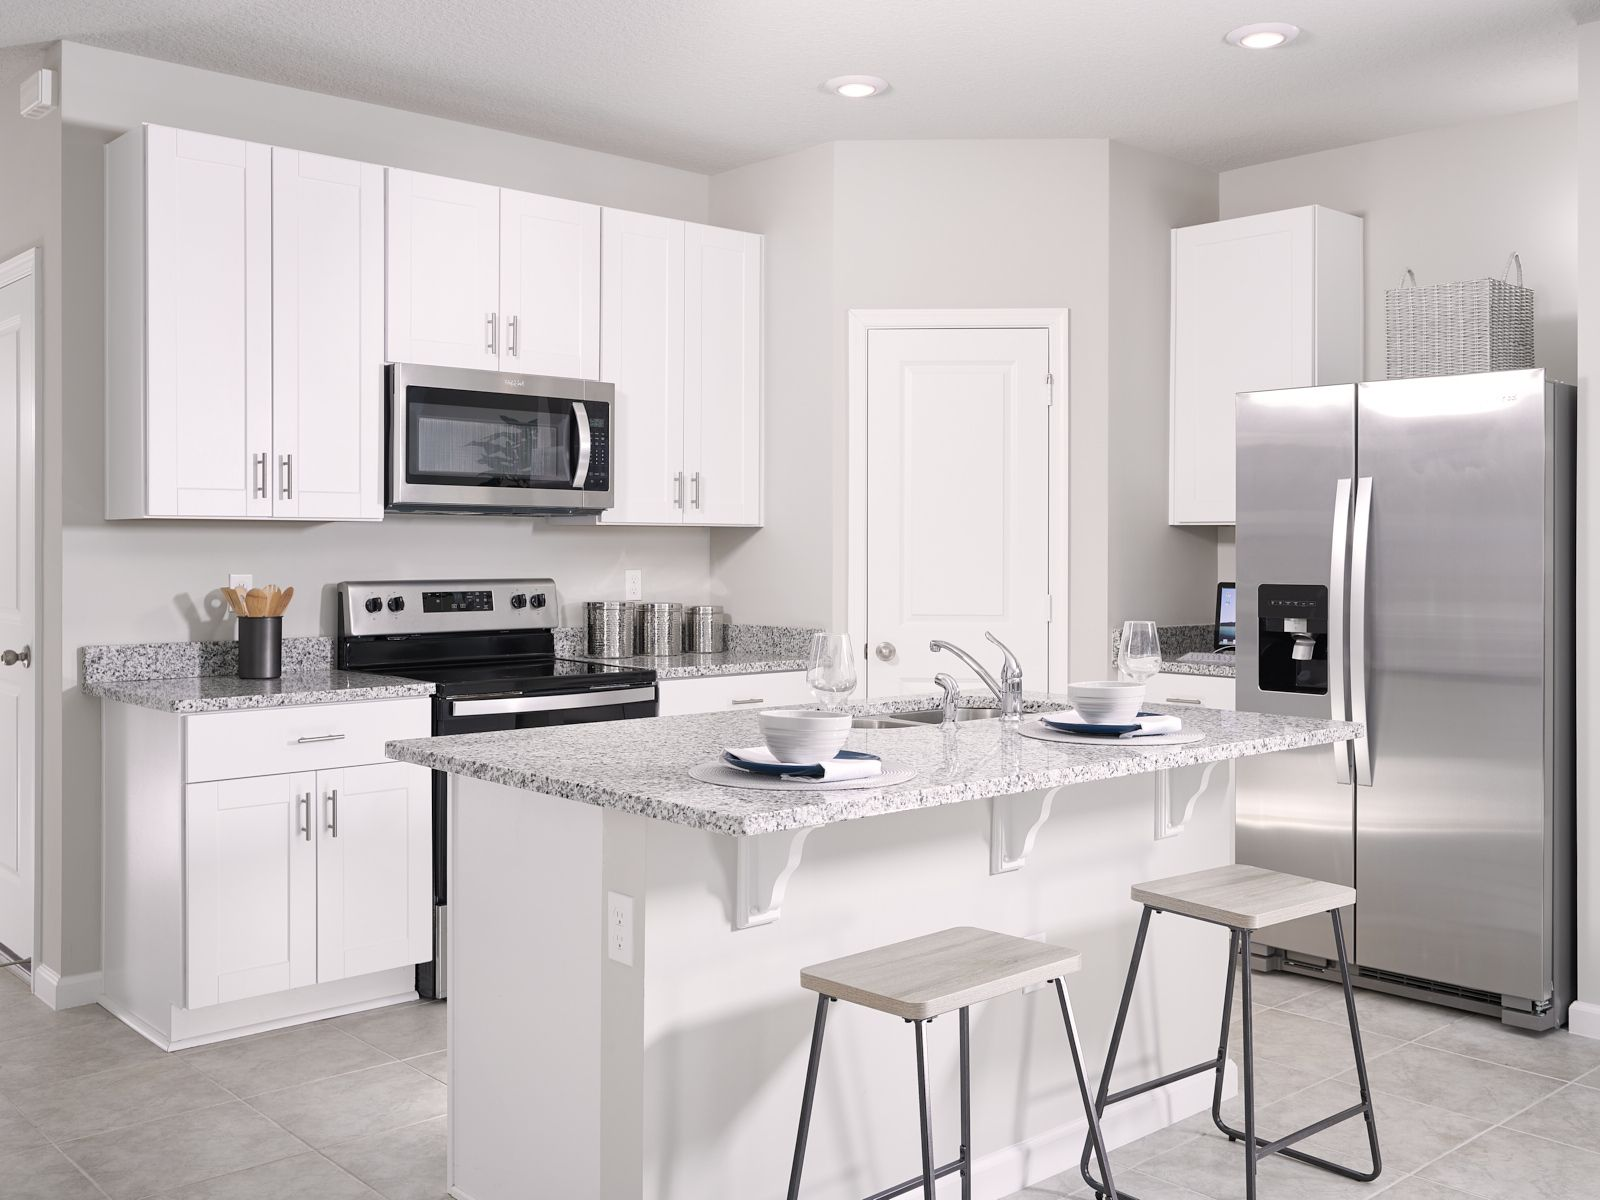 Kitchen featured in the Nickel By Meritage Homes in Martin-St. Lucie-Okeechobee Counties, FL